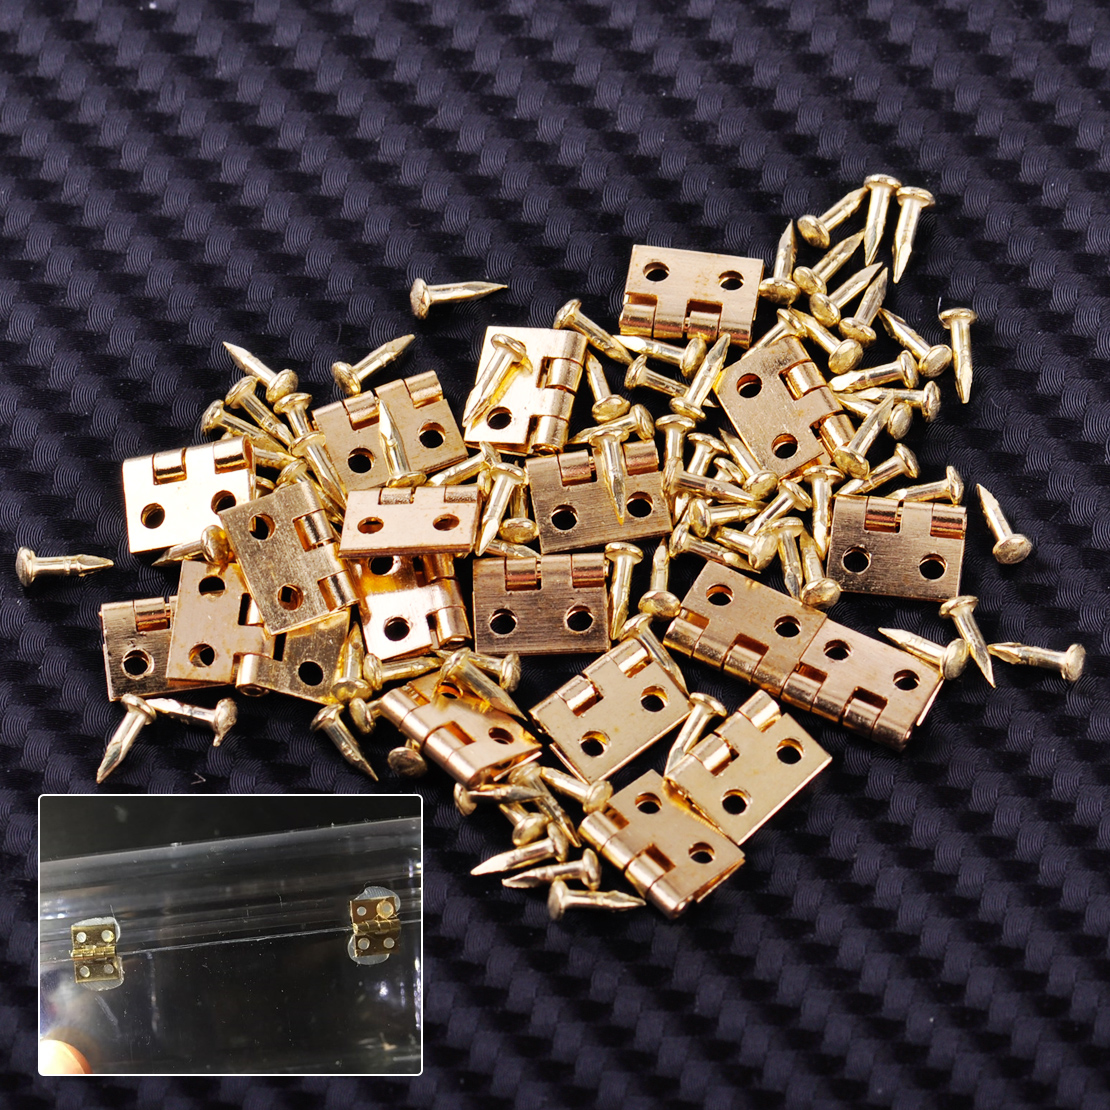 20pcs Furniture Golden Miniature Hinges With Nails Screws Fit For Dollhouse 1/12 Scale Cabinet Closet 10mm X 8mm